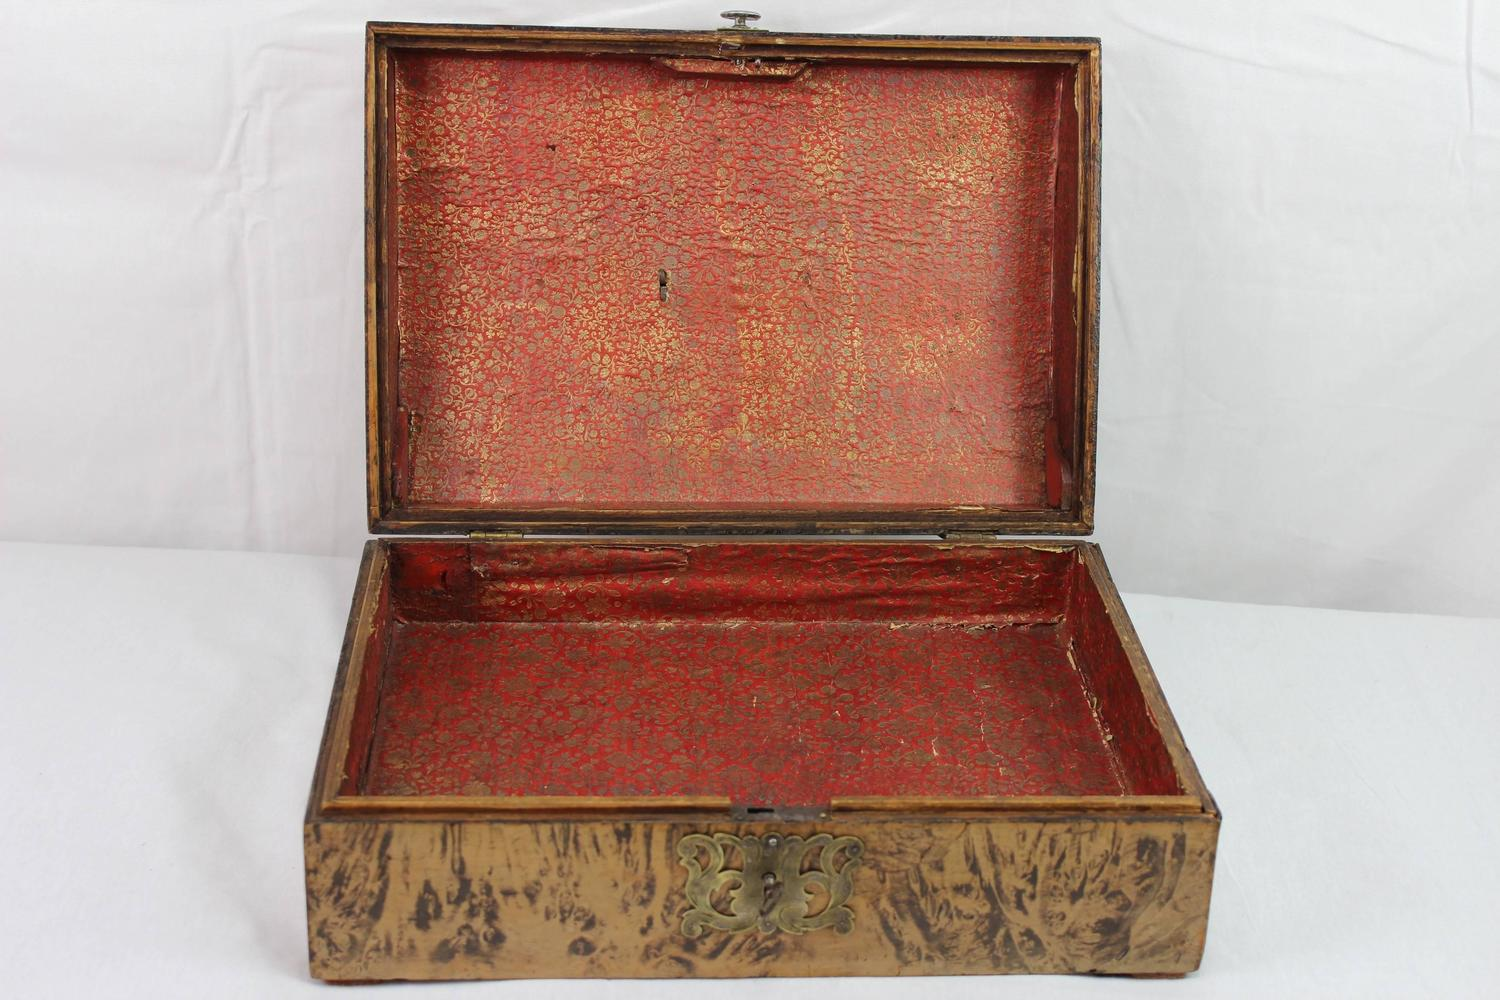 17th Century German Burl Walnut Box With Secret Compartment For Sale At 1stdibs